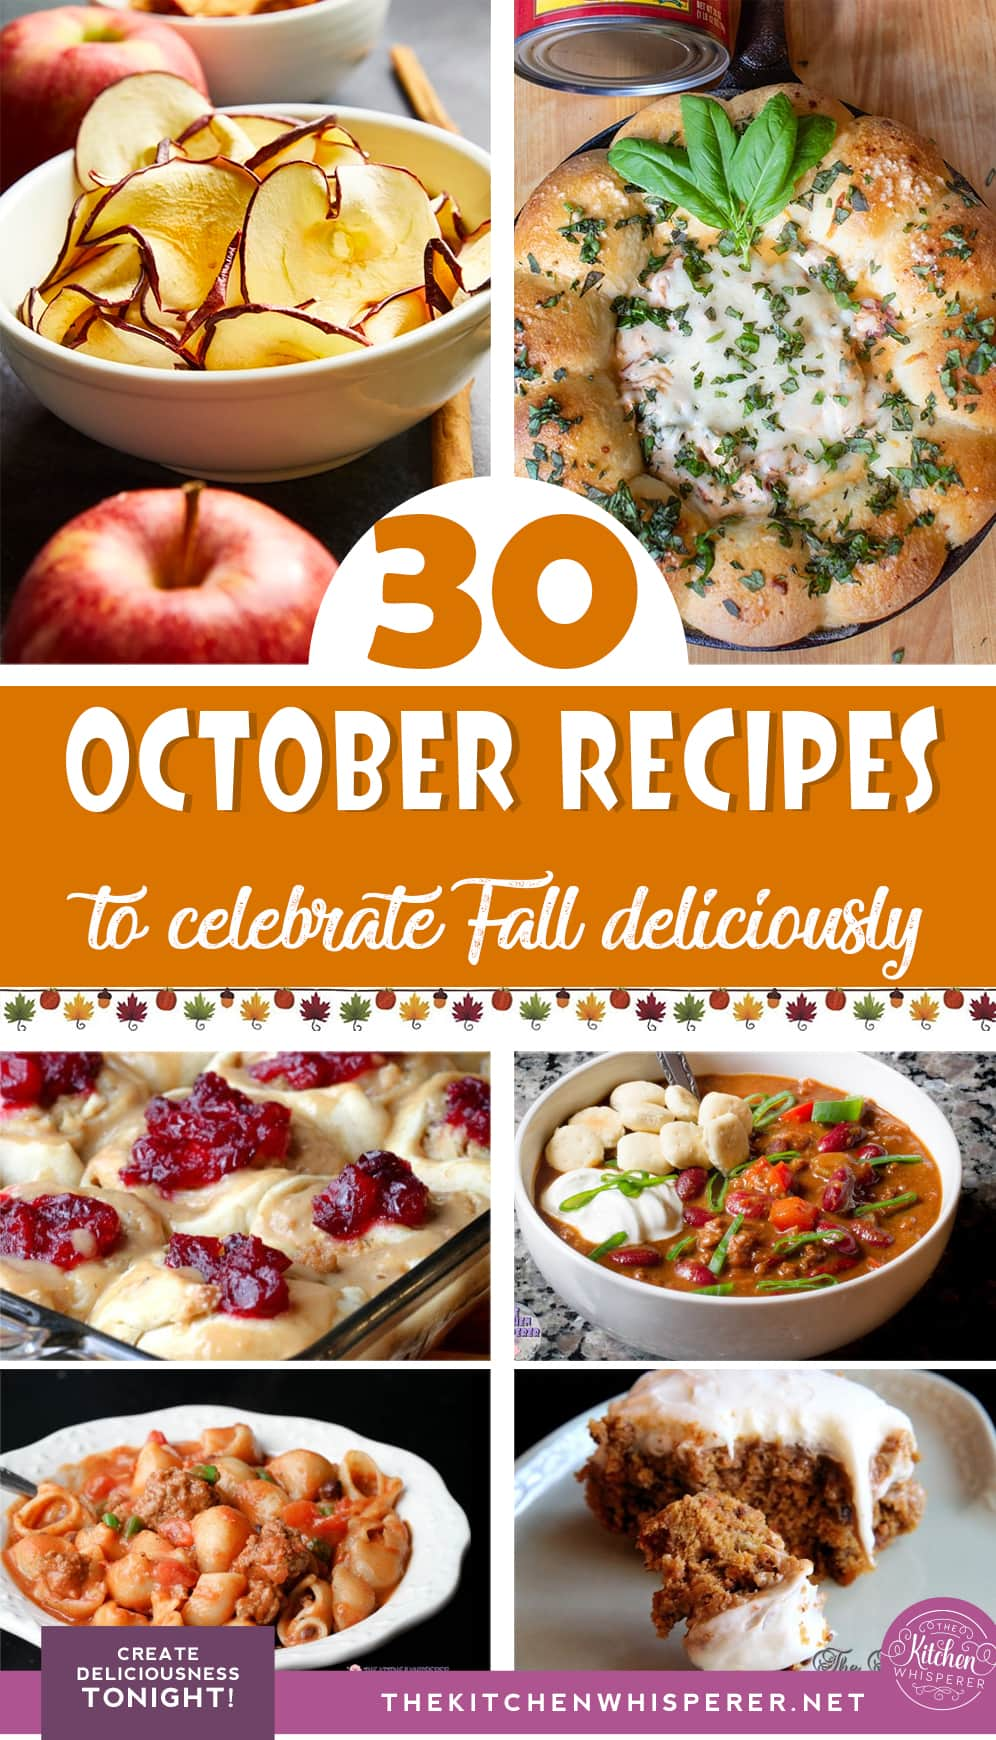 A collection of Autumn-inspired recipes to welcome Fall deliciously. From soups and chili, sourdough and comfort foods these 30 recipes will have you embracing pumpkin spice and everything nice!